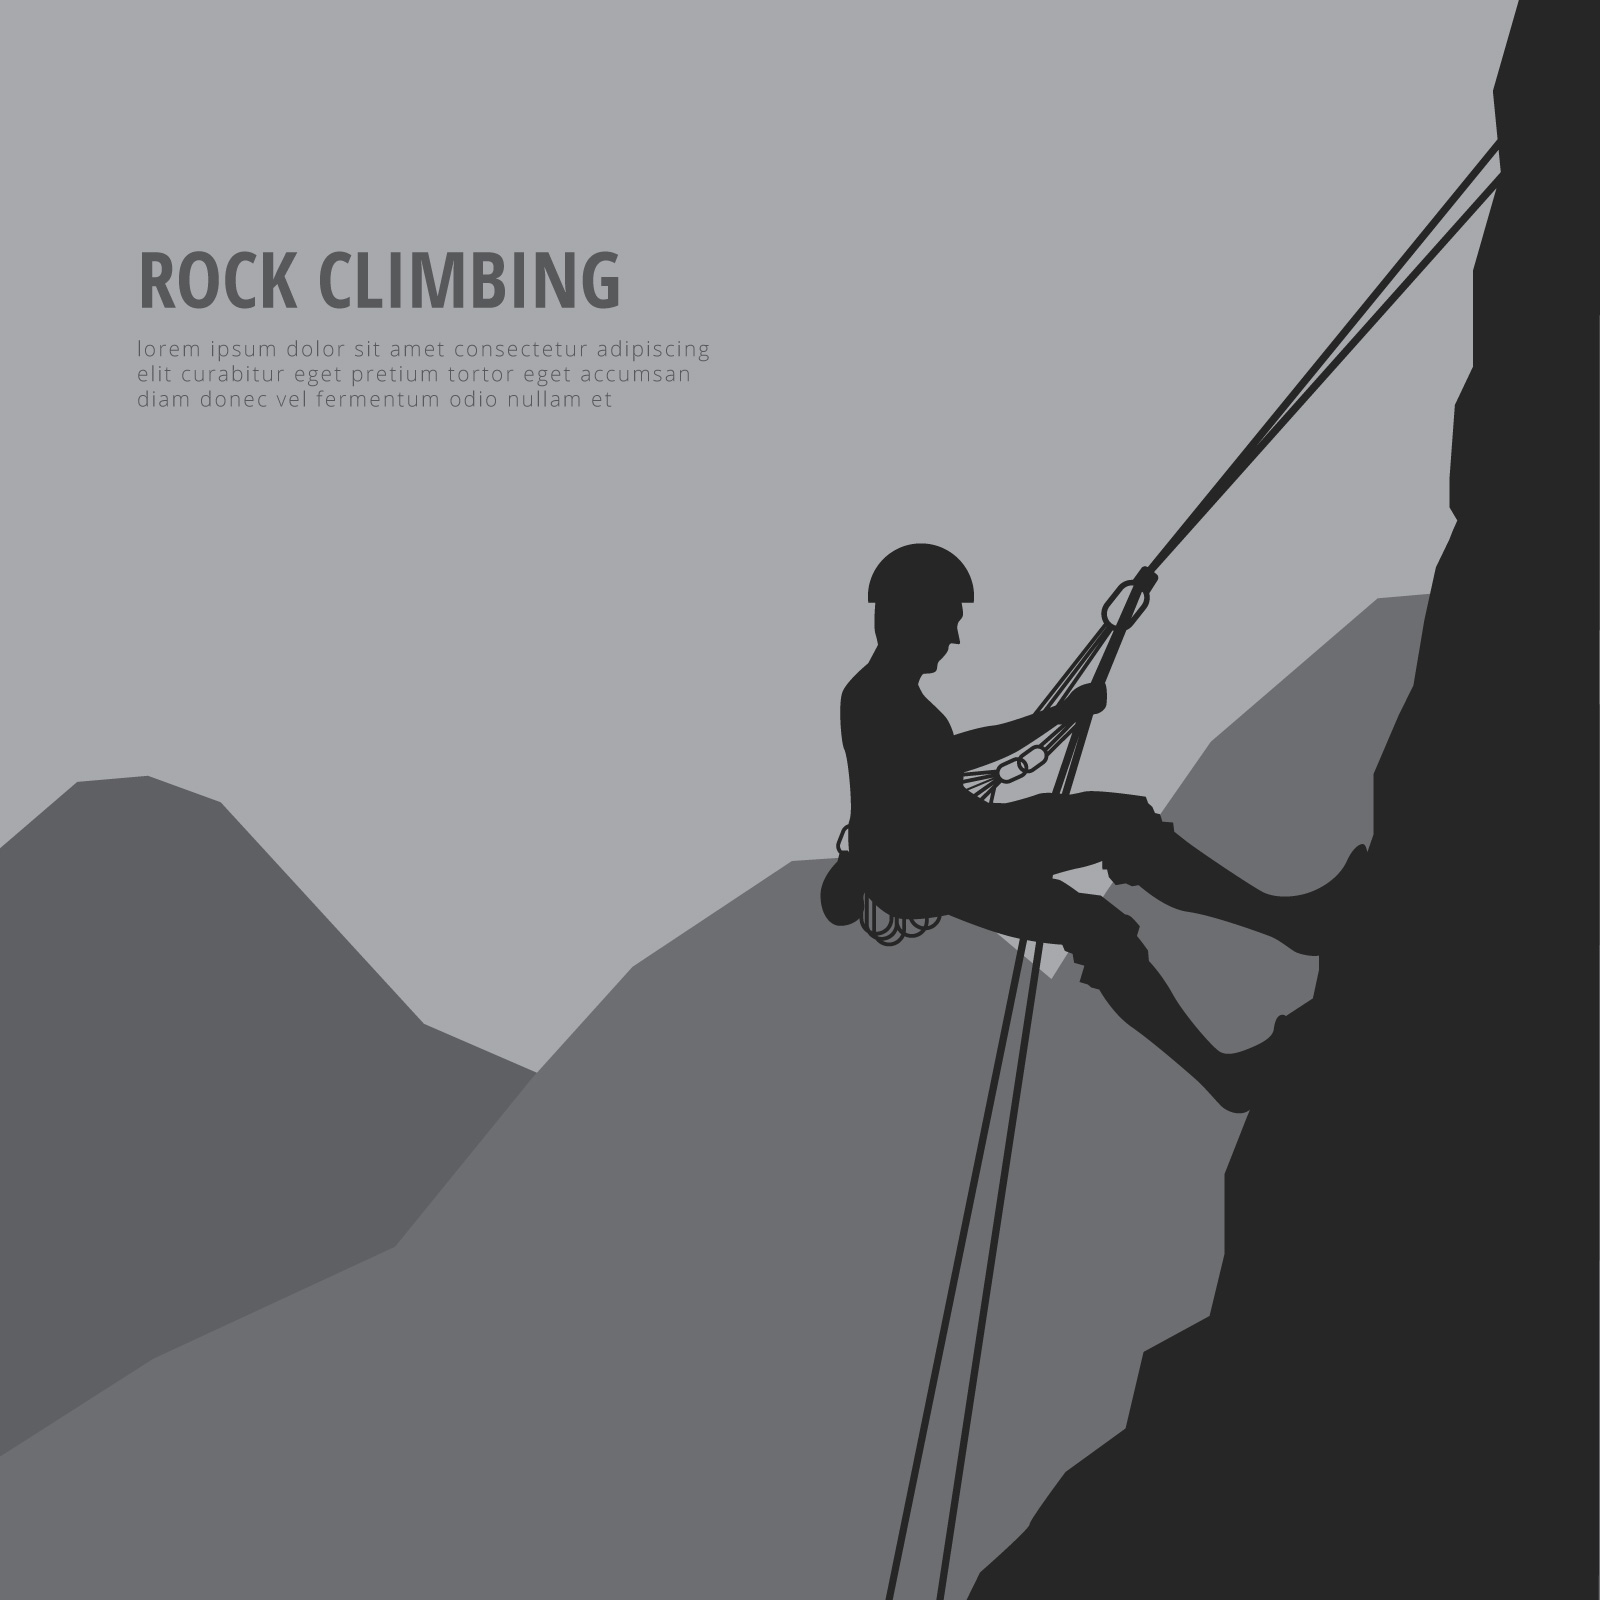 Rappelling Illustration with Climbers and Mountain ...